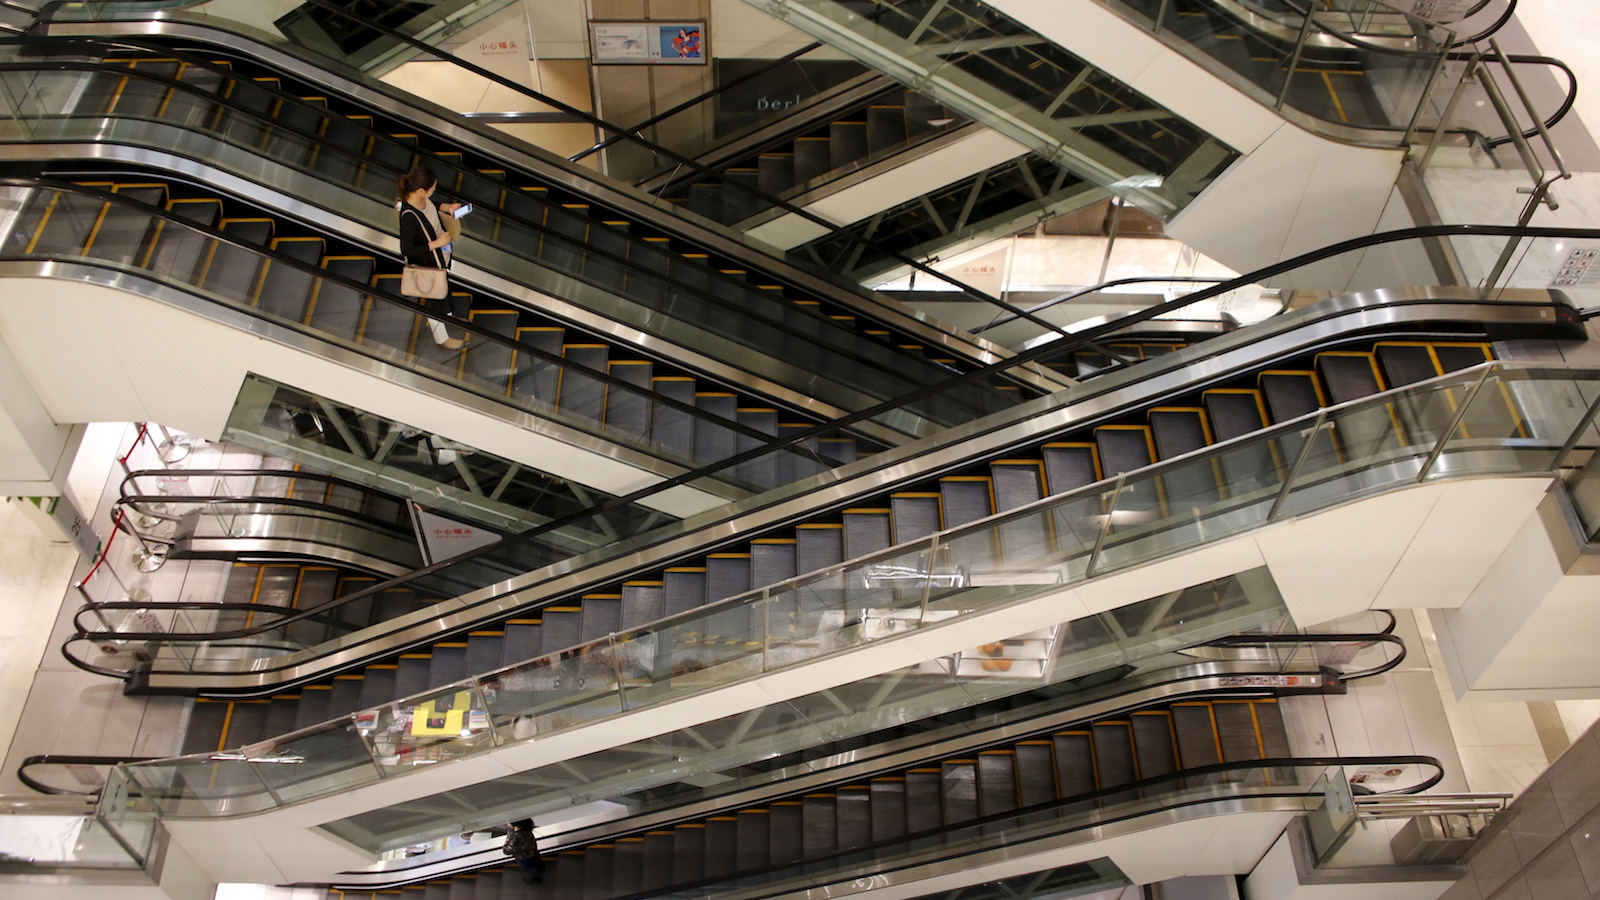 A woman rides an escalator at a shopping mall in Beijing, China, September 23, 2015. Rising vacancy rates and plummeting rents are increasingly common in Chinese malls and department stores, despite official data showing a sharp rebound in retail sales that helped the world's second-largest economy beat expectations in the third quarter. The answer to that apparent contradiction lies in the rising competition from online shopping and government purchases possibly boosting retail statistics. Add poorly managed properties into the equation and the empty malls aren't much of a surprise. Picture taken September 23, 2015. REUTERS/Kim Kyung-Hoon - RTX1T6UC